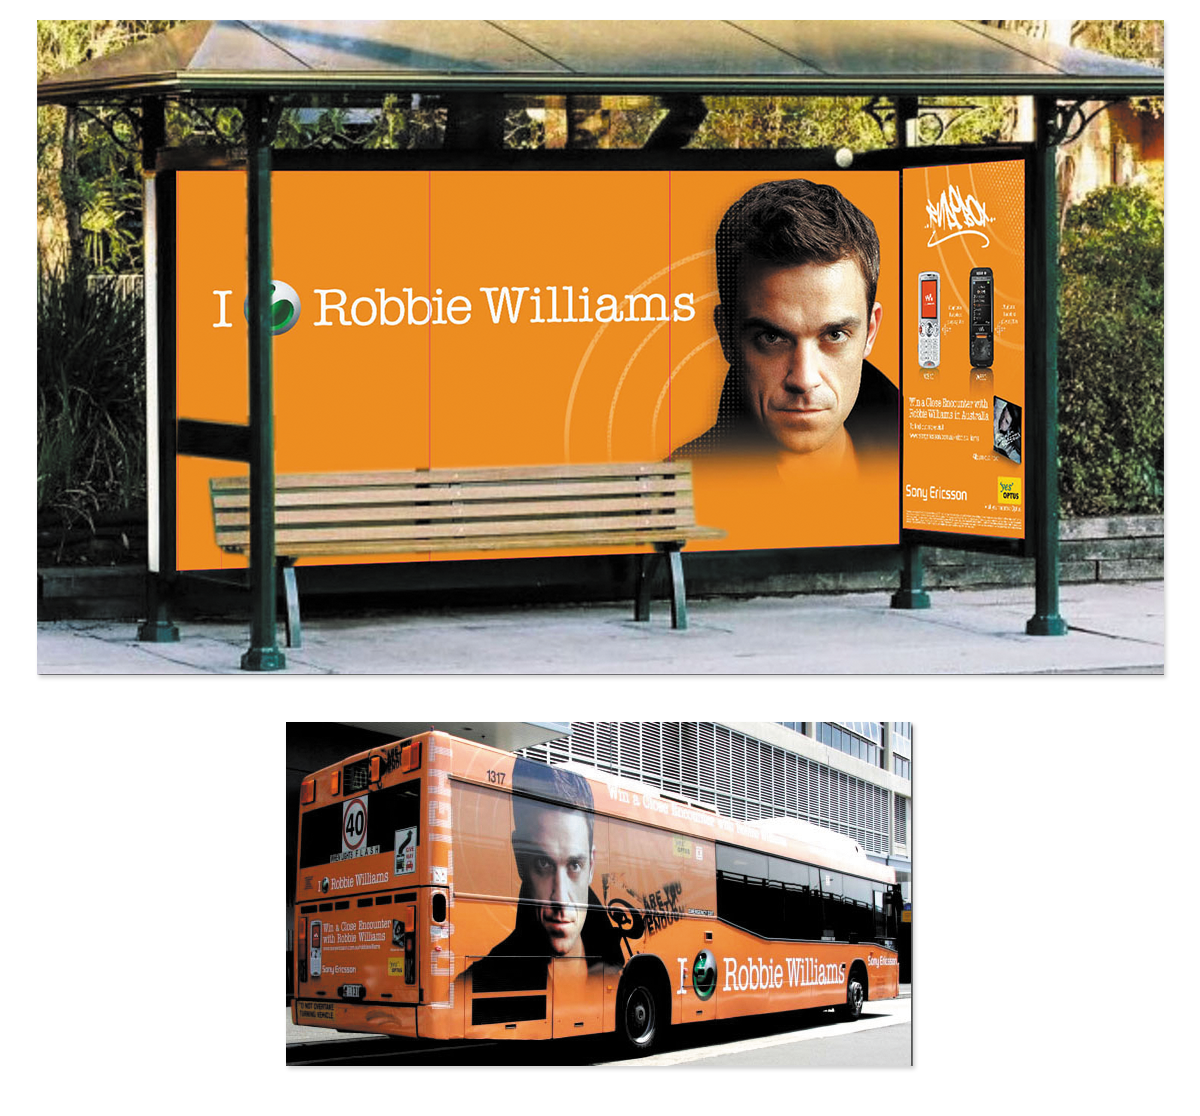 Sony Ericsson Robbie Williams Outdoor Campaign